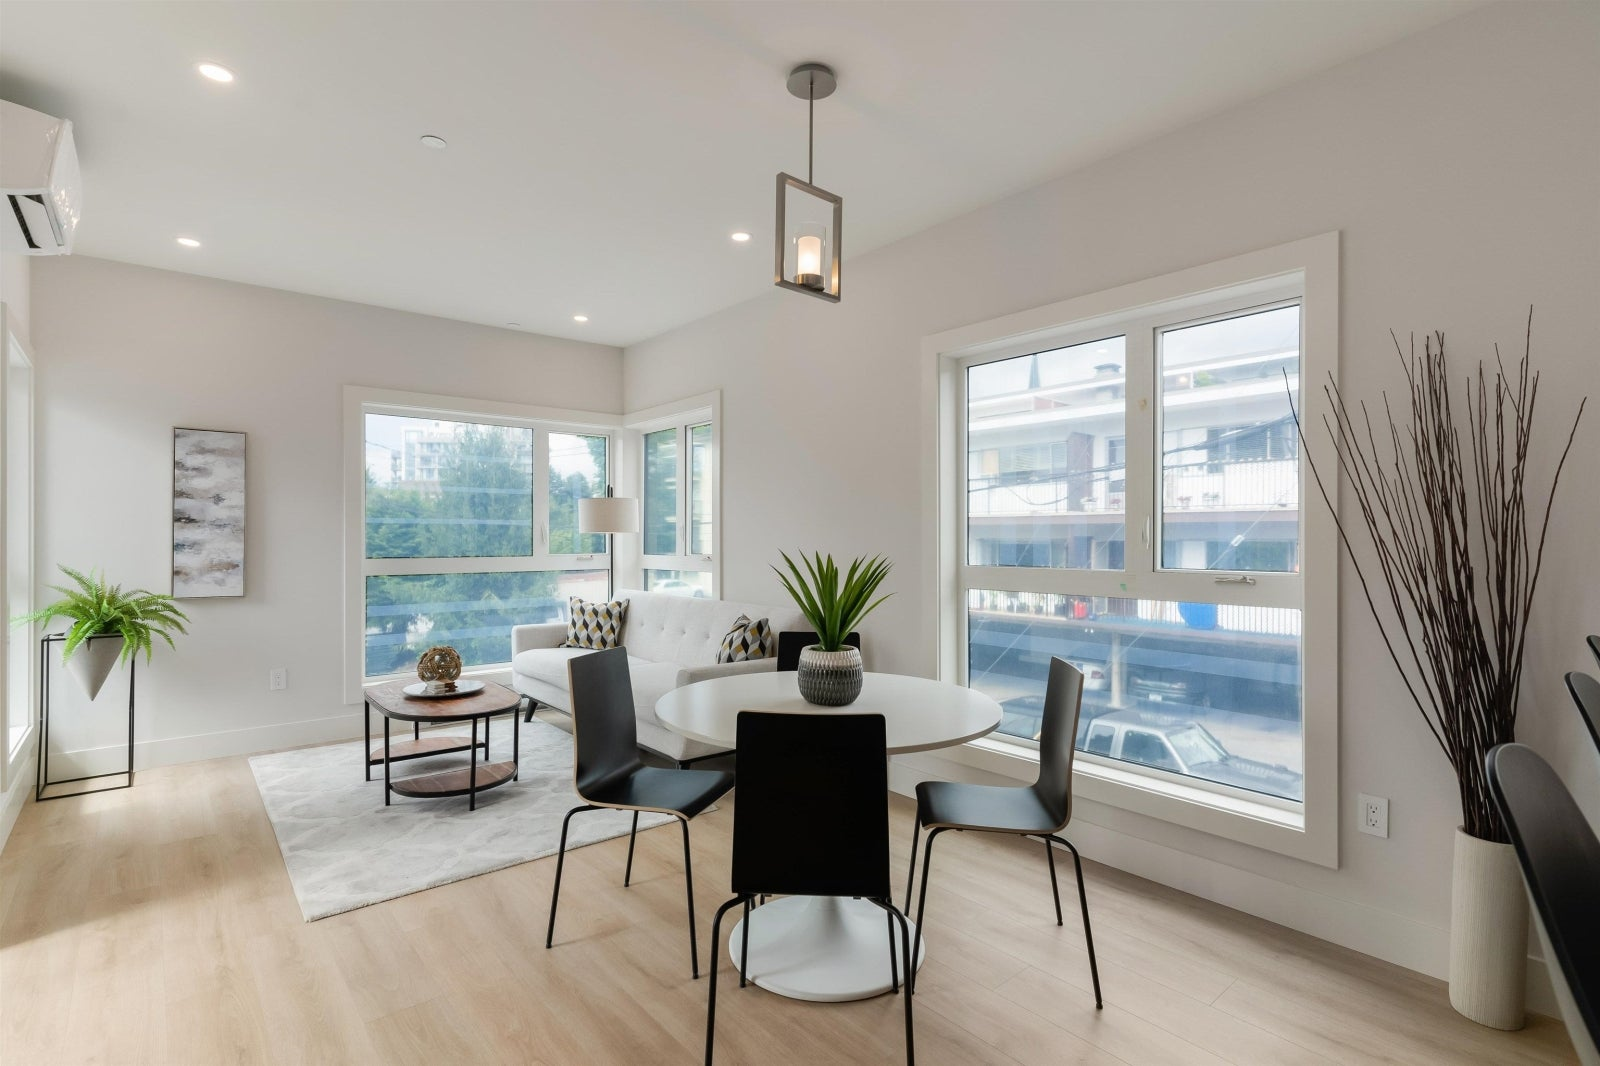 TH 1 230-232 E 8TH STREET - Central Lonsdale Townhouse for sale, 3 Bedrooms (R2610807) #3